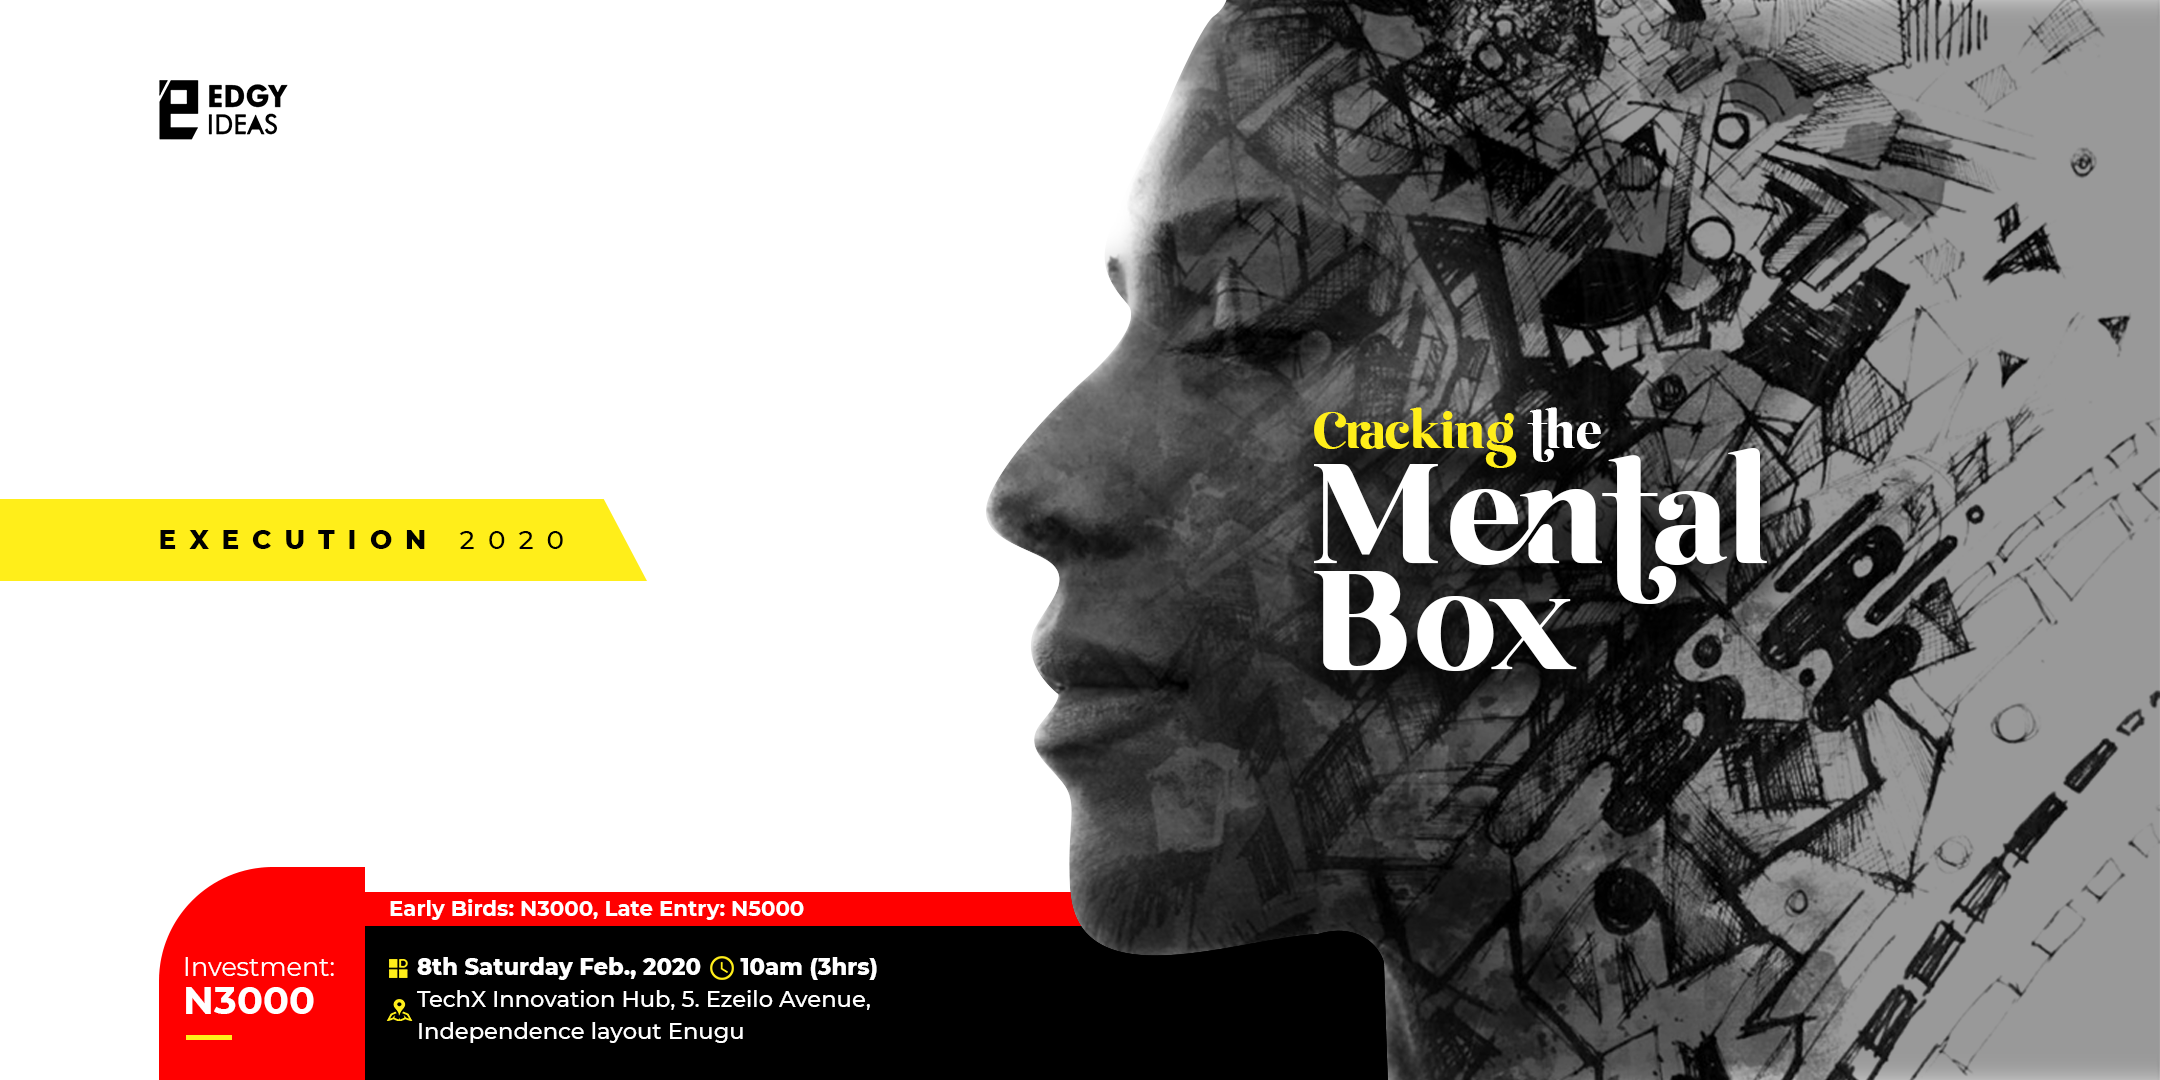 EXECUTION 2020 - CRACKING THE MENTAL BOX Post free event in Nigeria using tickethub.ng, buy and sell tickets to event